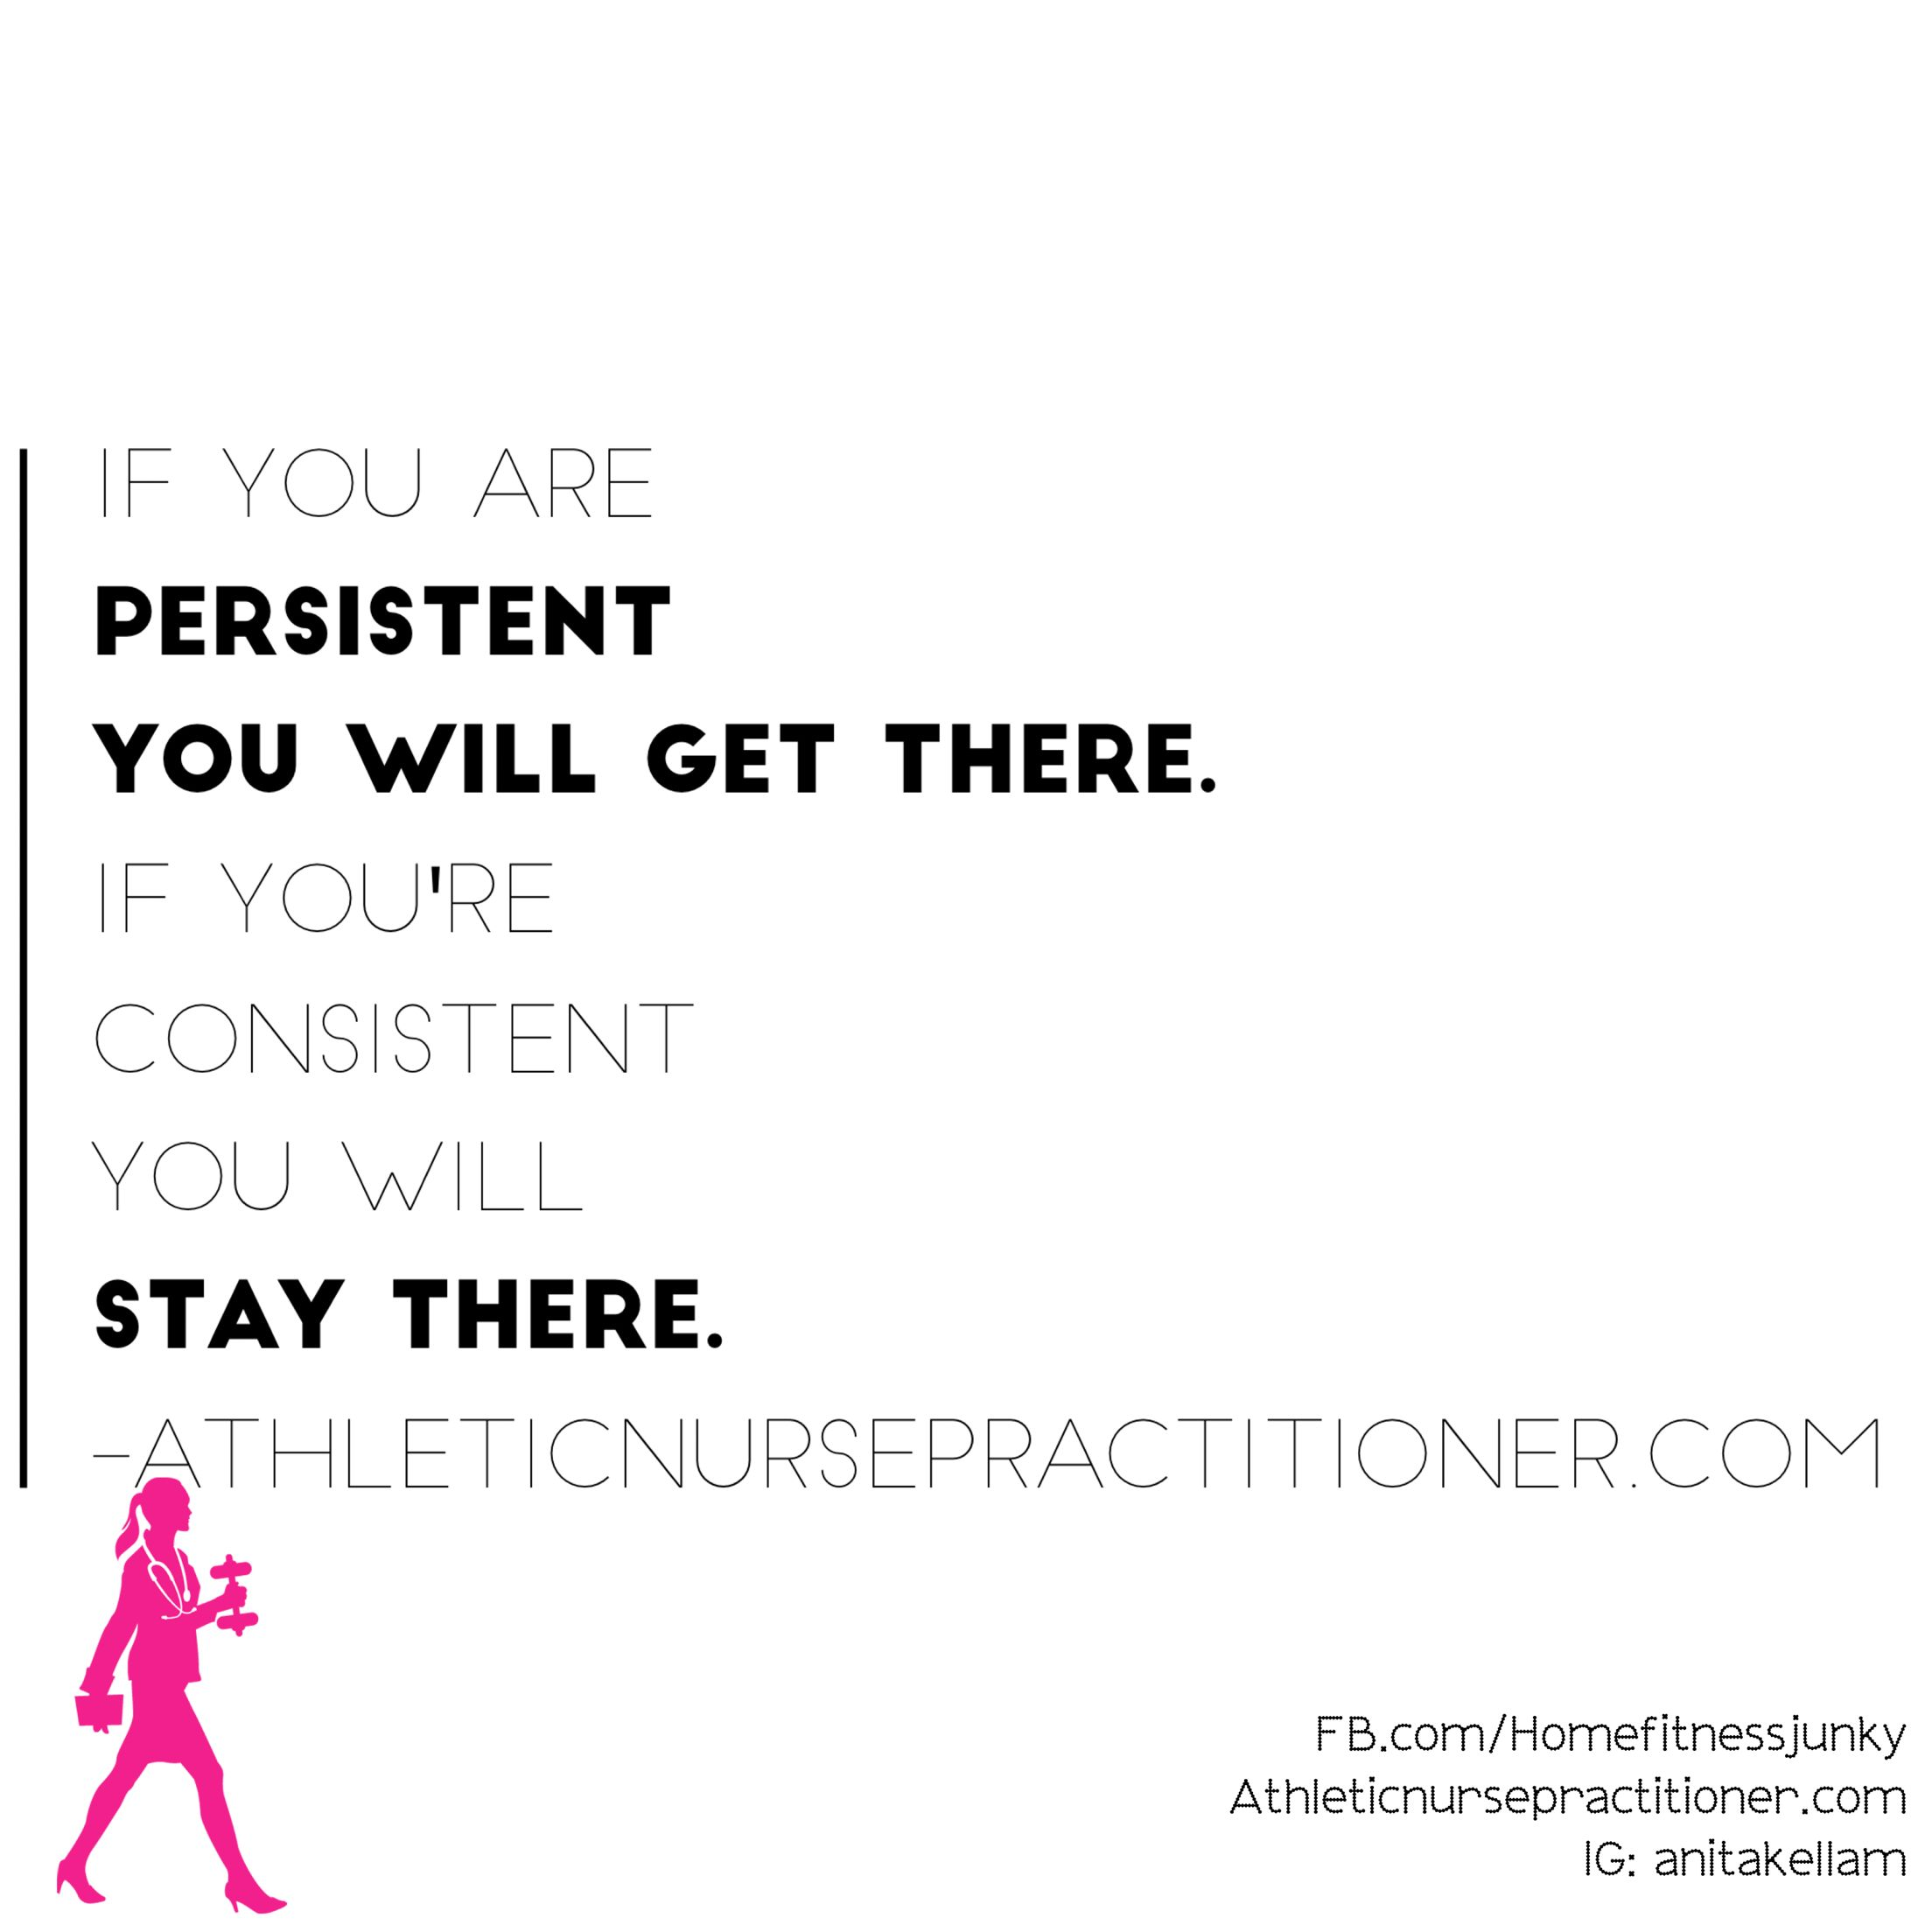 Happy motivation Monday . It's a new week in the beginning of a new month. There's no better time to get moving and make a positive change in your life.  Persistence will get you there but consistent effort will keep you there.   What are your goals for the week?